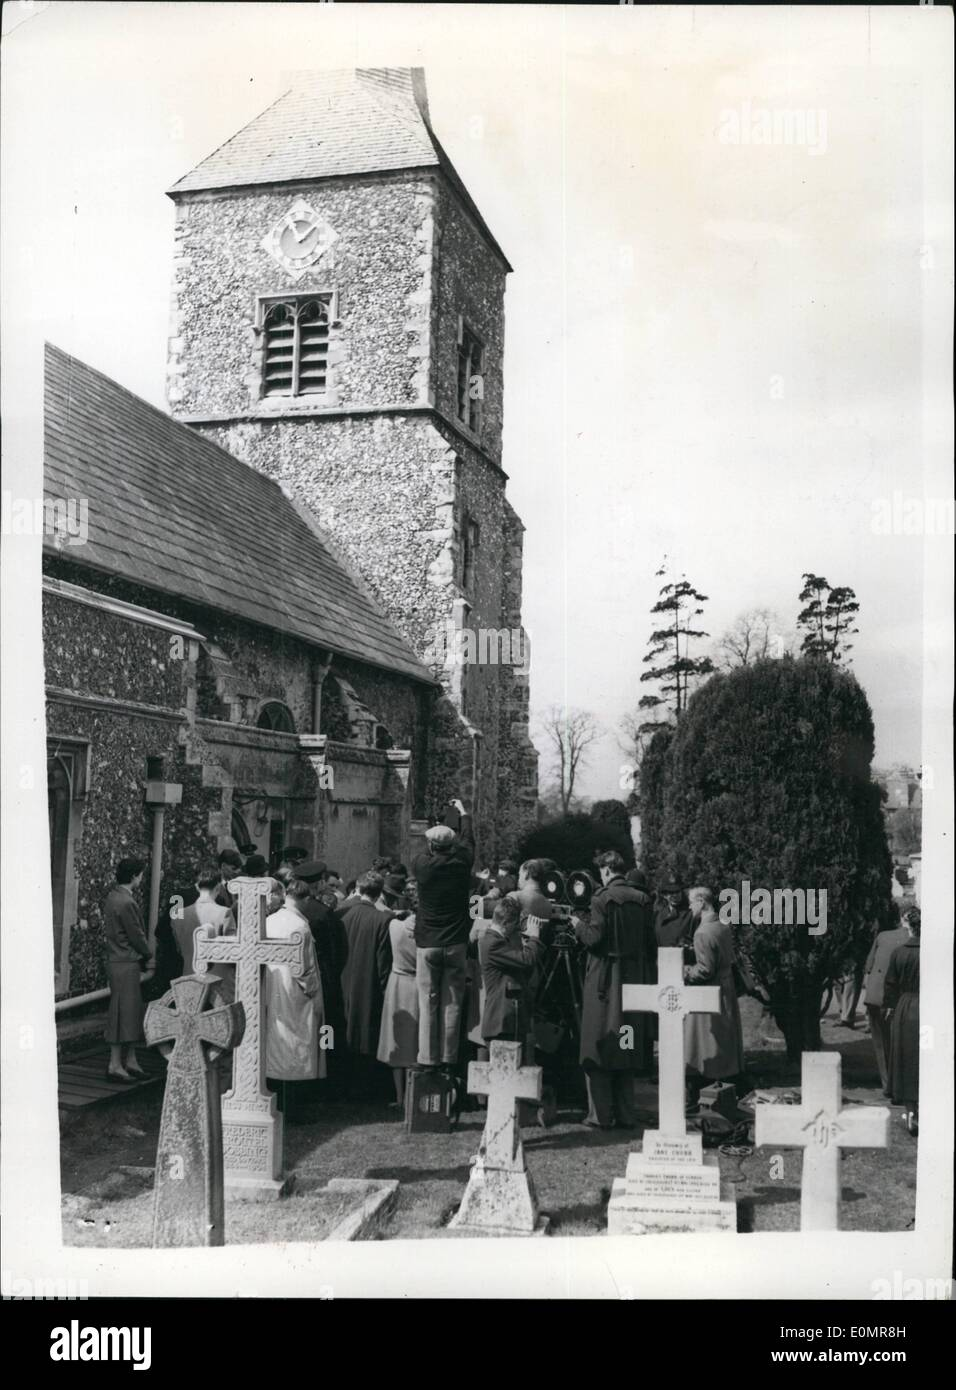 May 05, 1956 - Fifteenth Century Tomb Opened At Chislehurst.. May Prove Theory On Shakespeare Plays: Workmen opened the fiteenth century tomb of Sir Thomas Walsingham in St. Nicholas Church, Chislehust, today - in search of evidence to support the theory that Christopher Marlowe wrote the Shakespeare plays. Permission was granted to Mr. Calvin Hoffman an America critic for the opening of the tomb. Mr. Hoffman hopes to find manuscripts which would prove his theory. Photo Shows: General view of the scene at ST. Nicholas Church, Chislehurst - as the opening of the tomb progressed today. - Stock Image